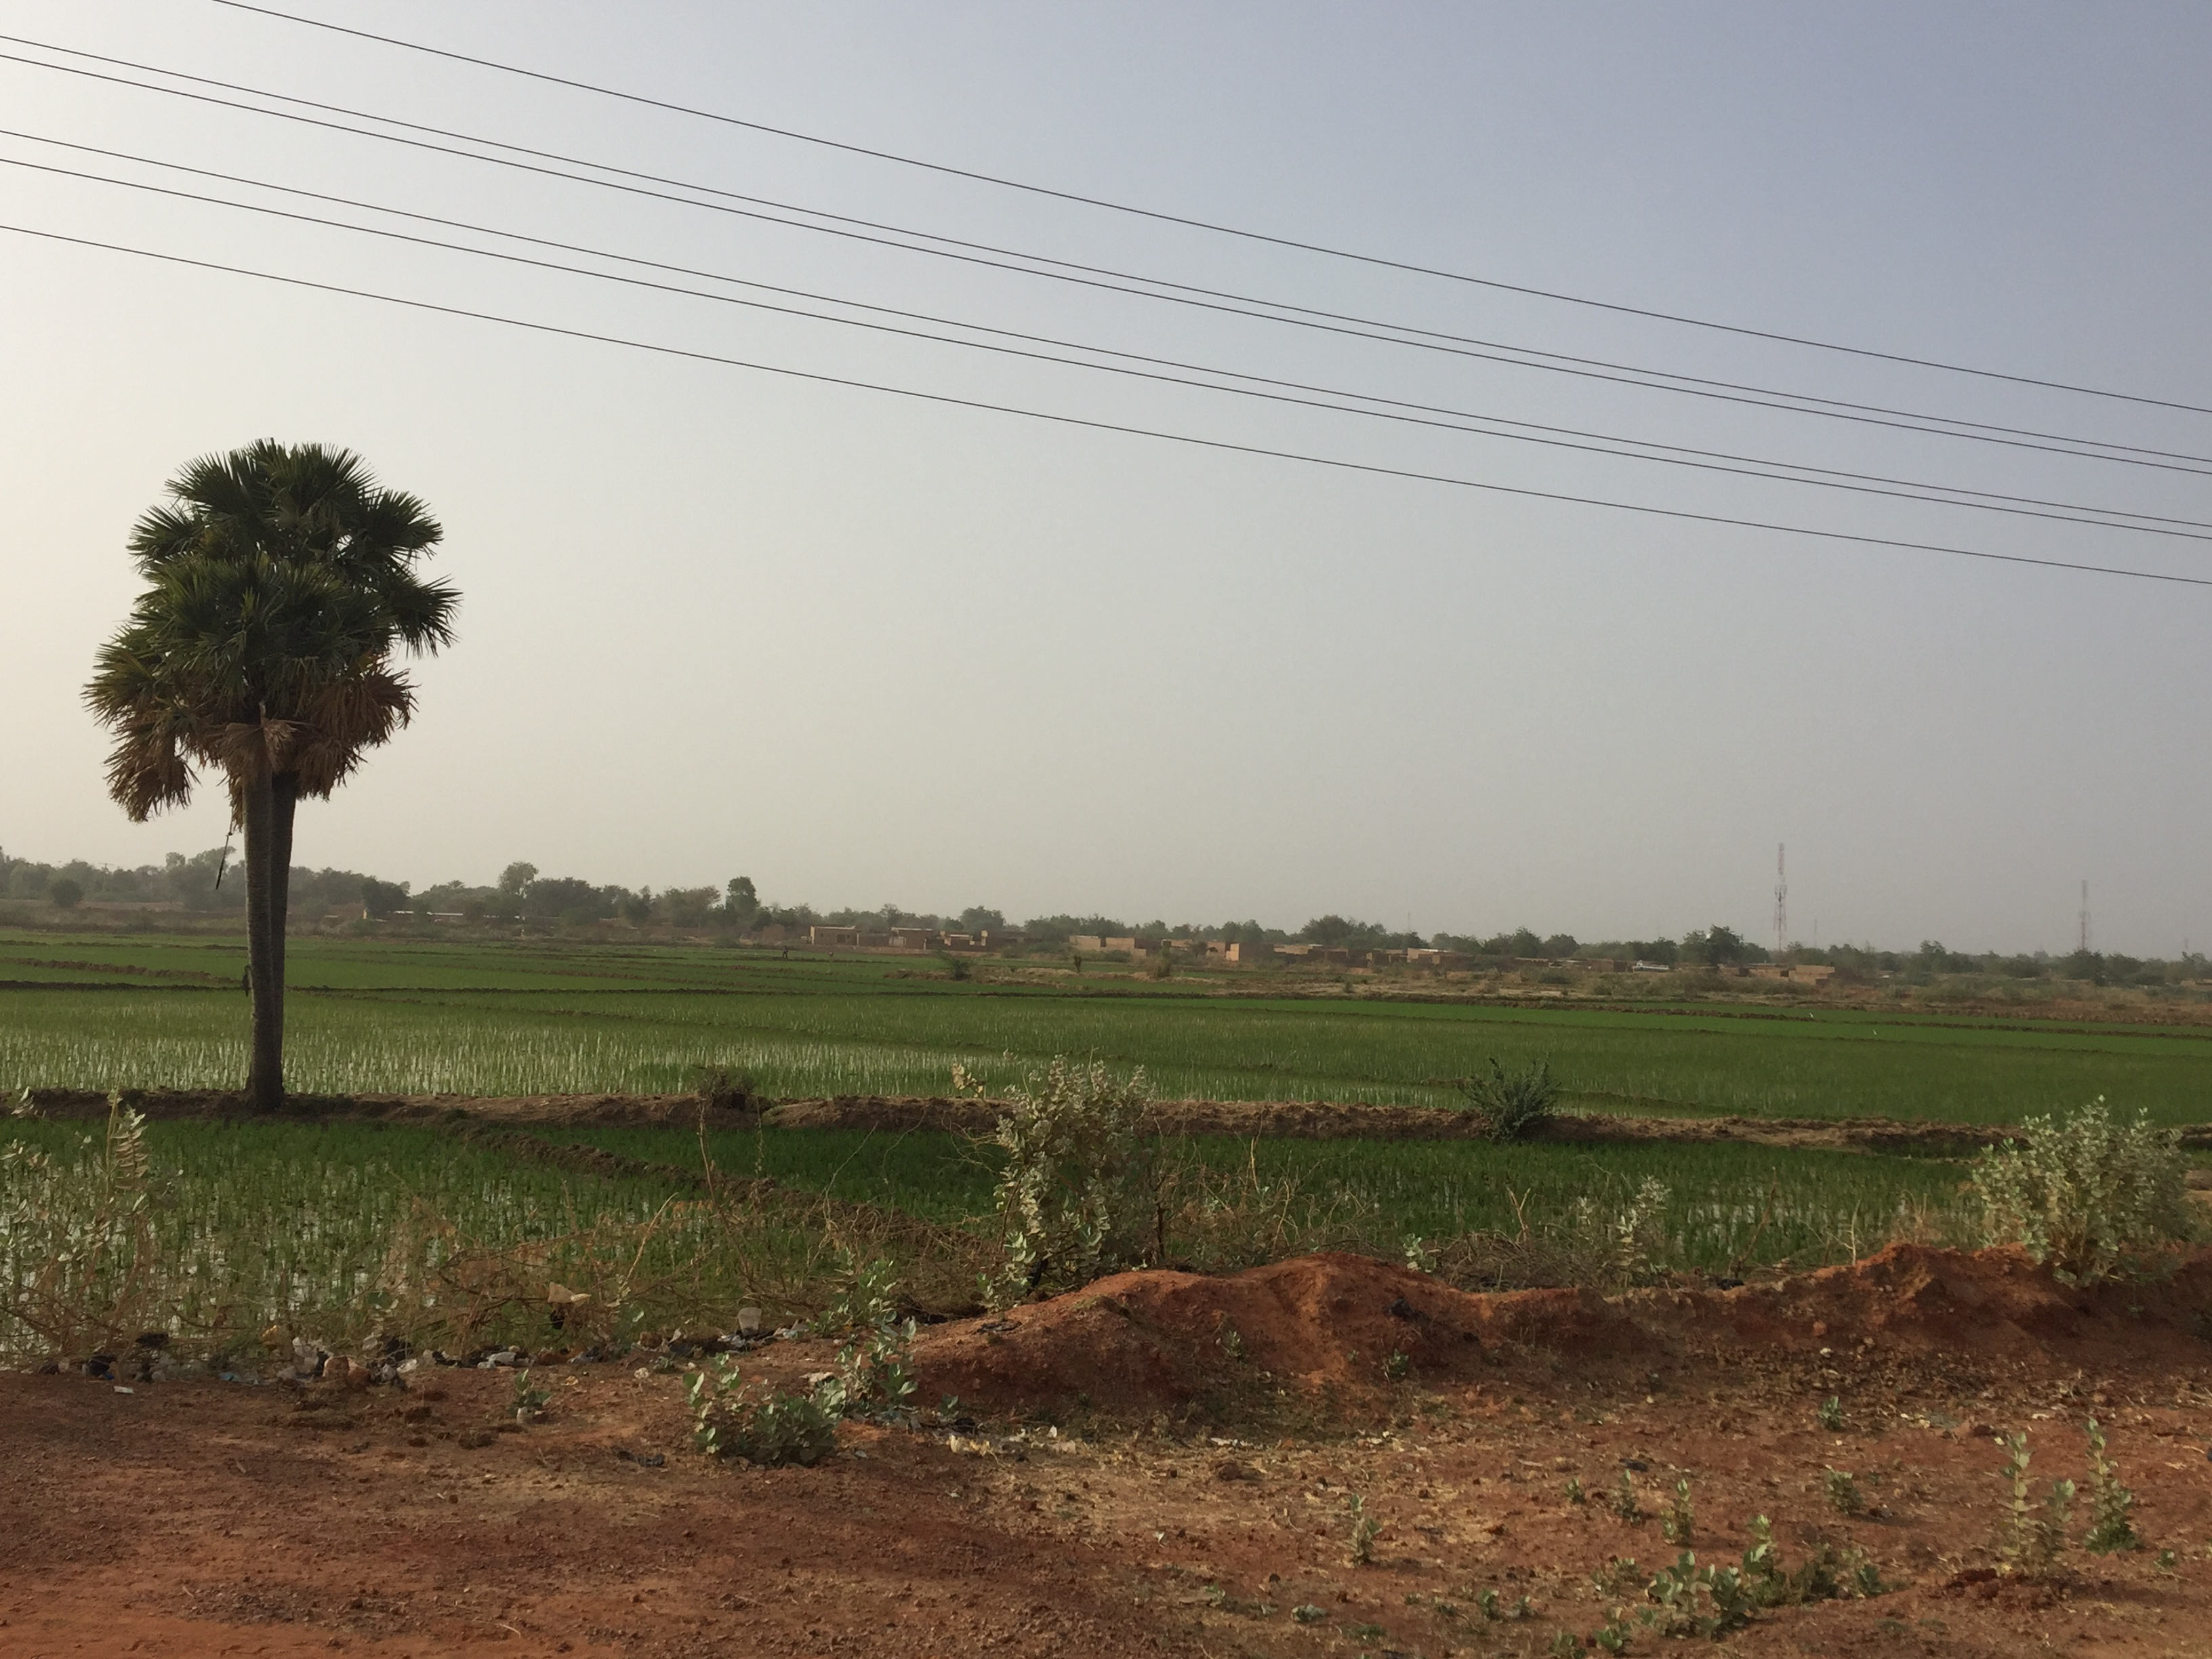 This rice field near the Niger river represents less than 1% of irrigated cropland.